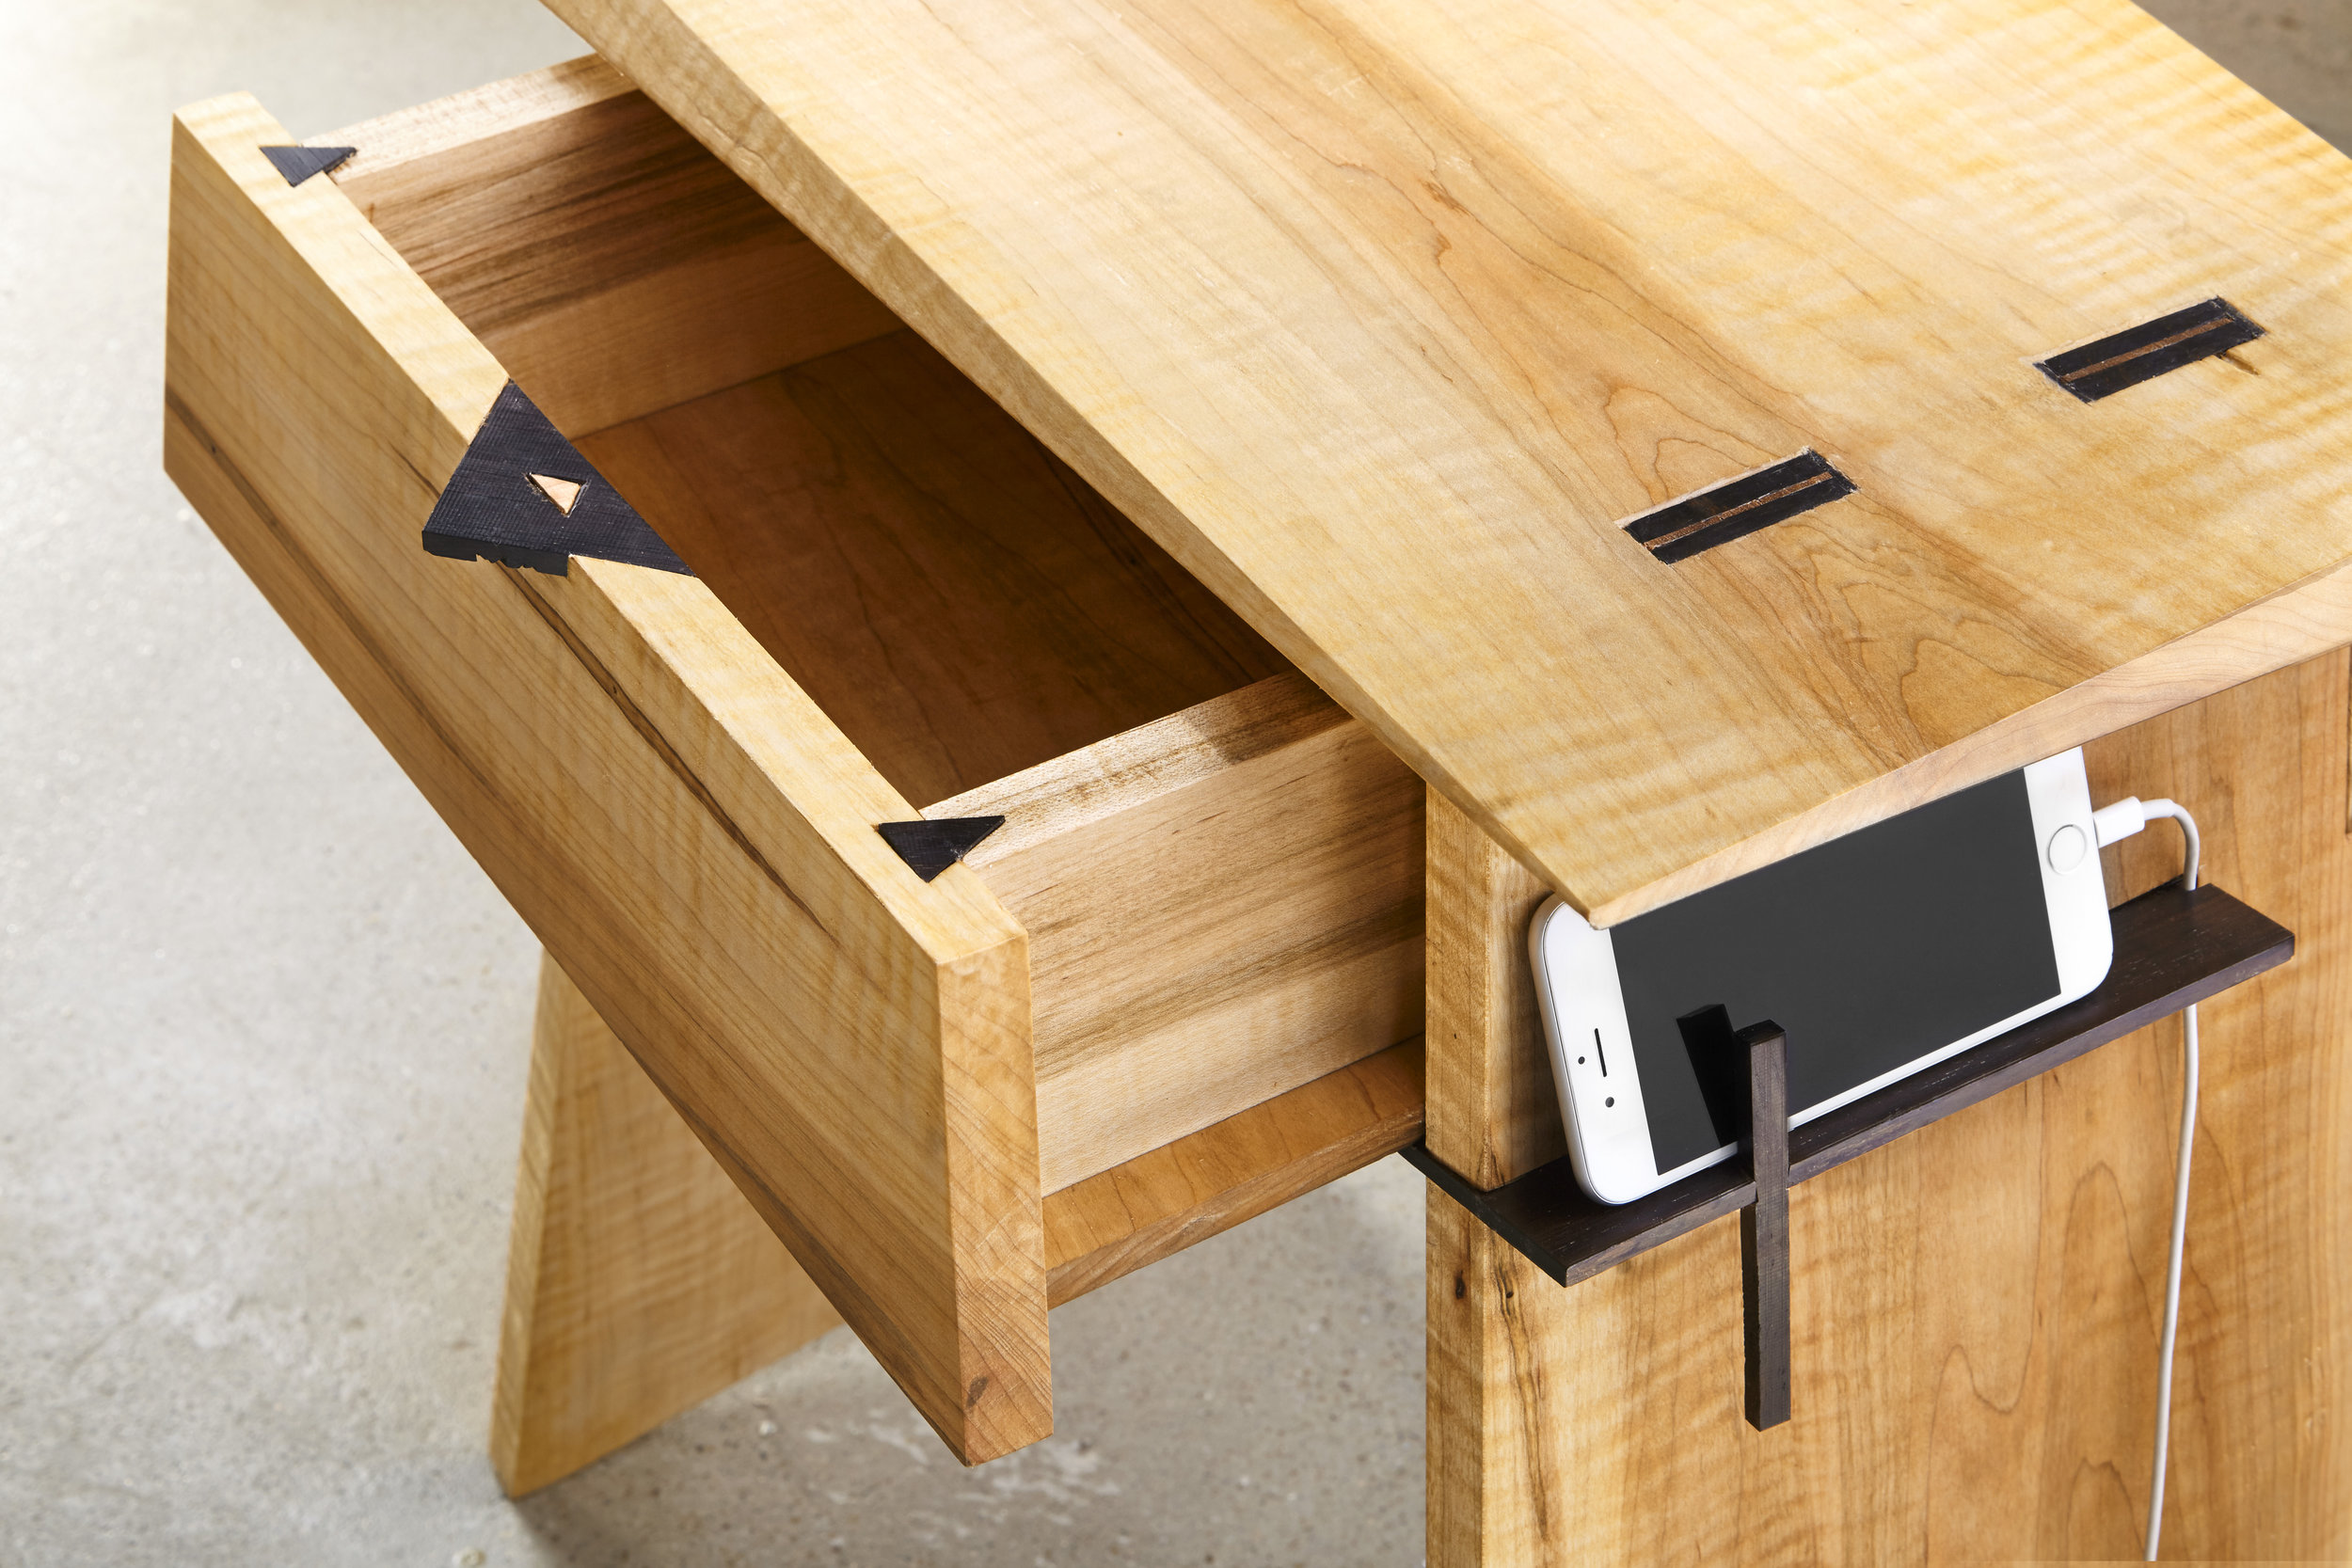 Edo Side Table: the ebony drawer slide also functions as a separate charging shelf